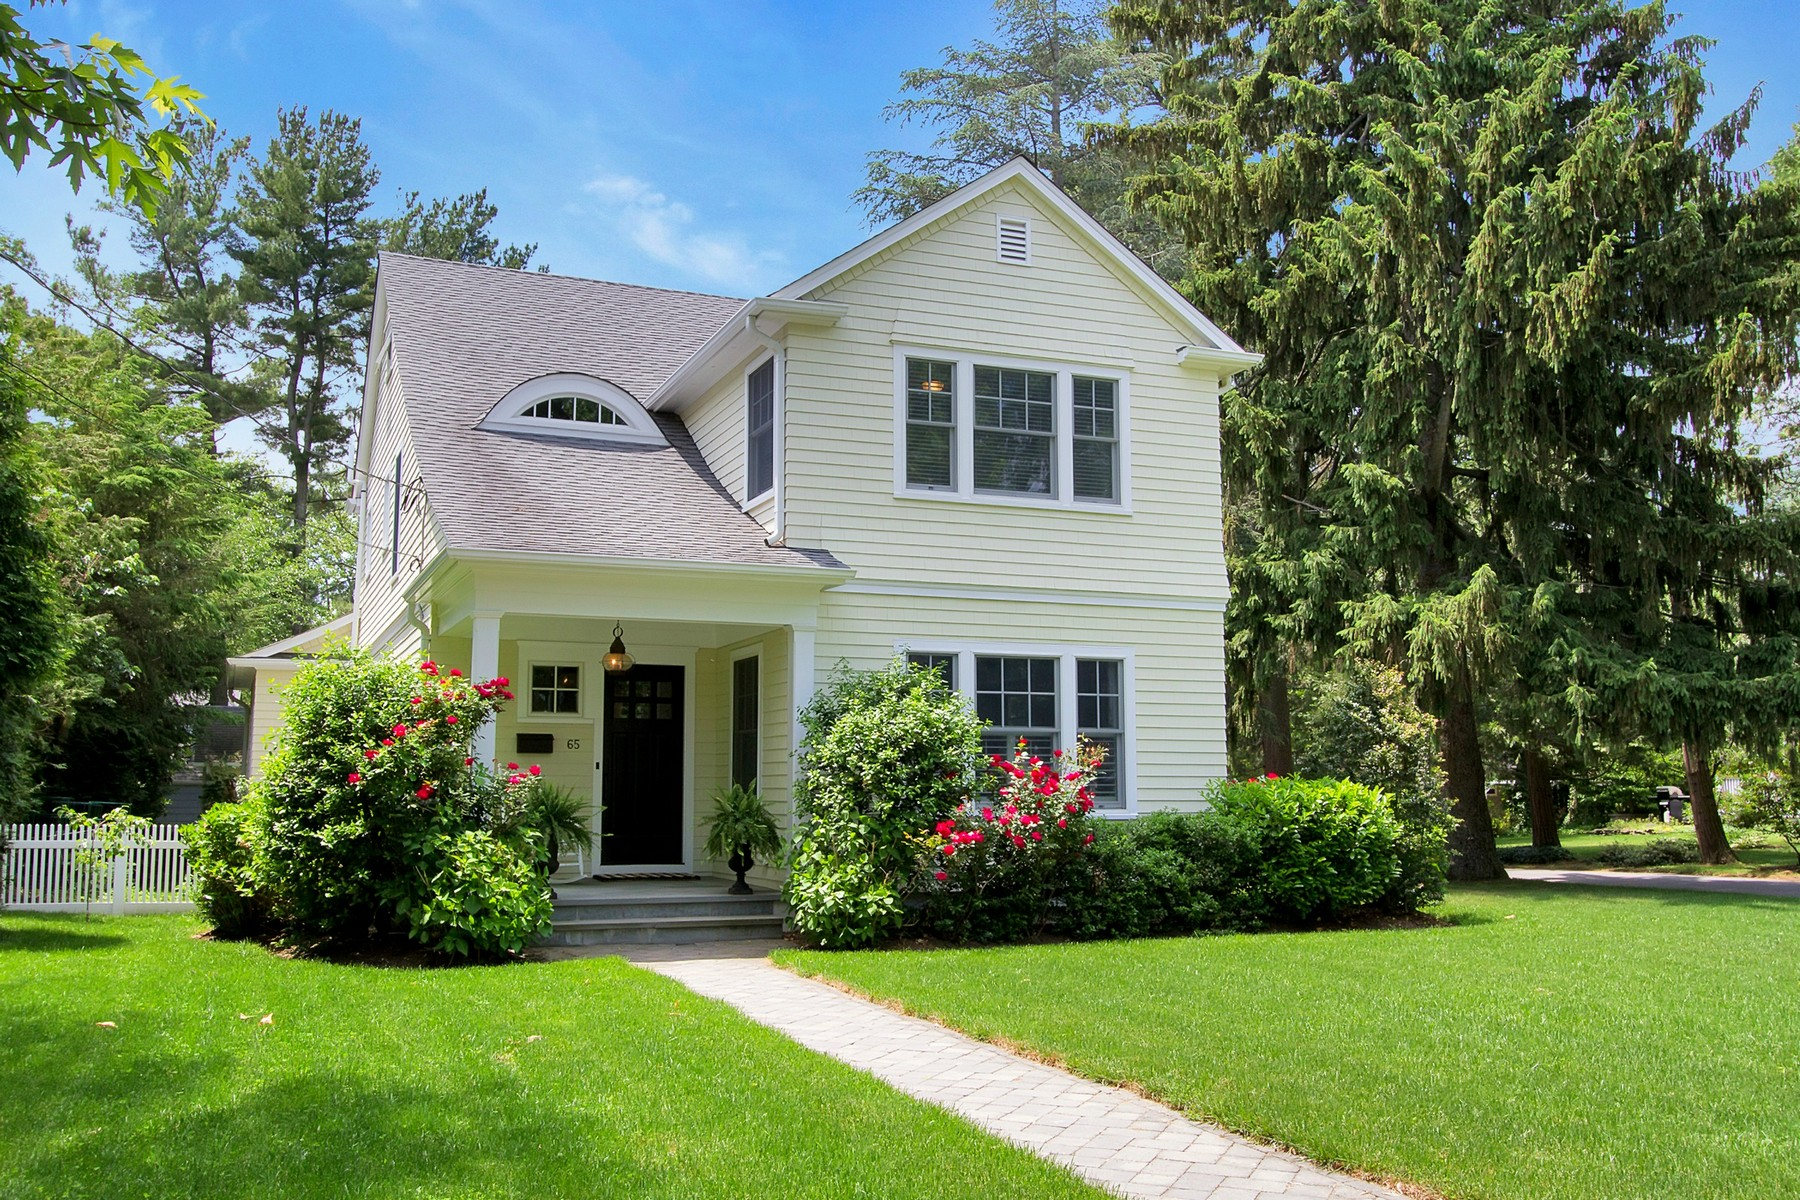 Single Family Home for Sale at The perfect home is a means of self-expression 65 Grange Ave Fair Haven, New Jersey, 07704 United States